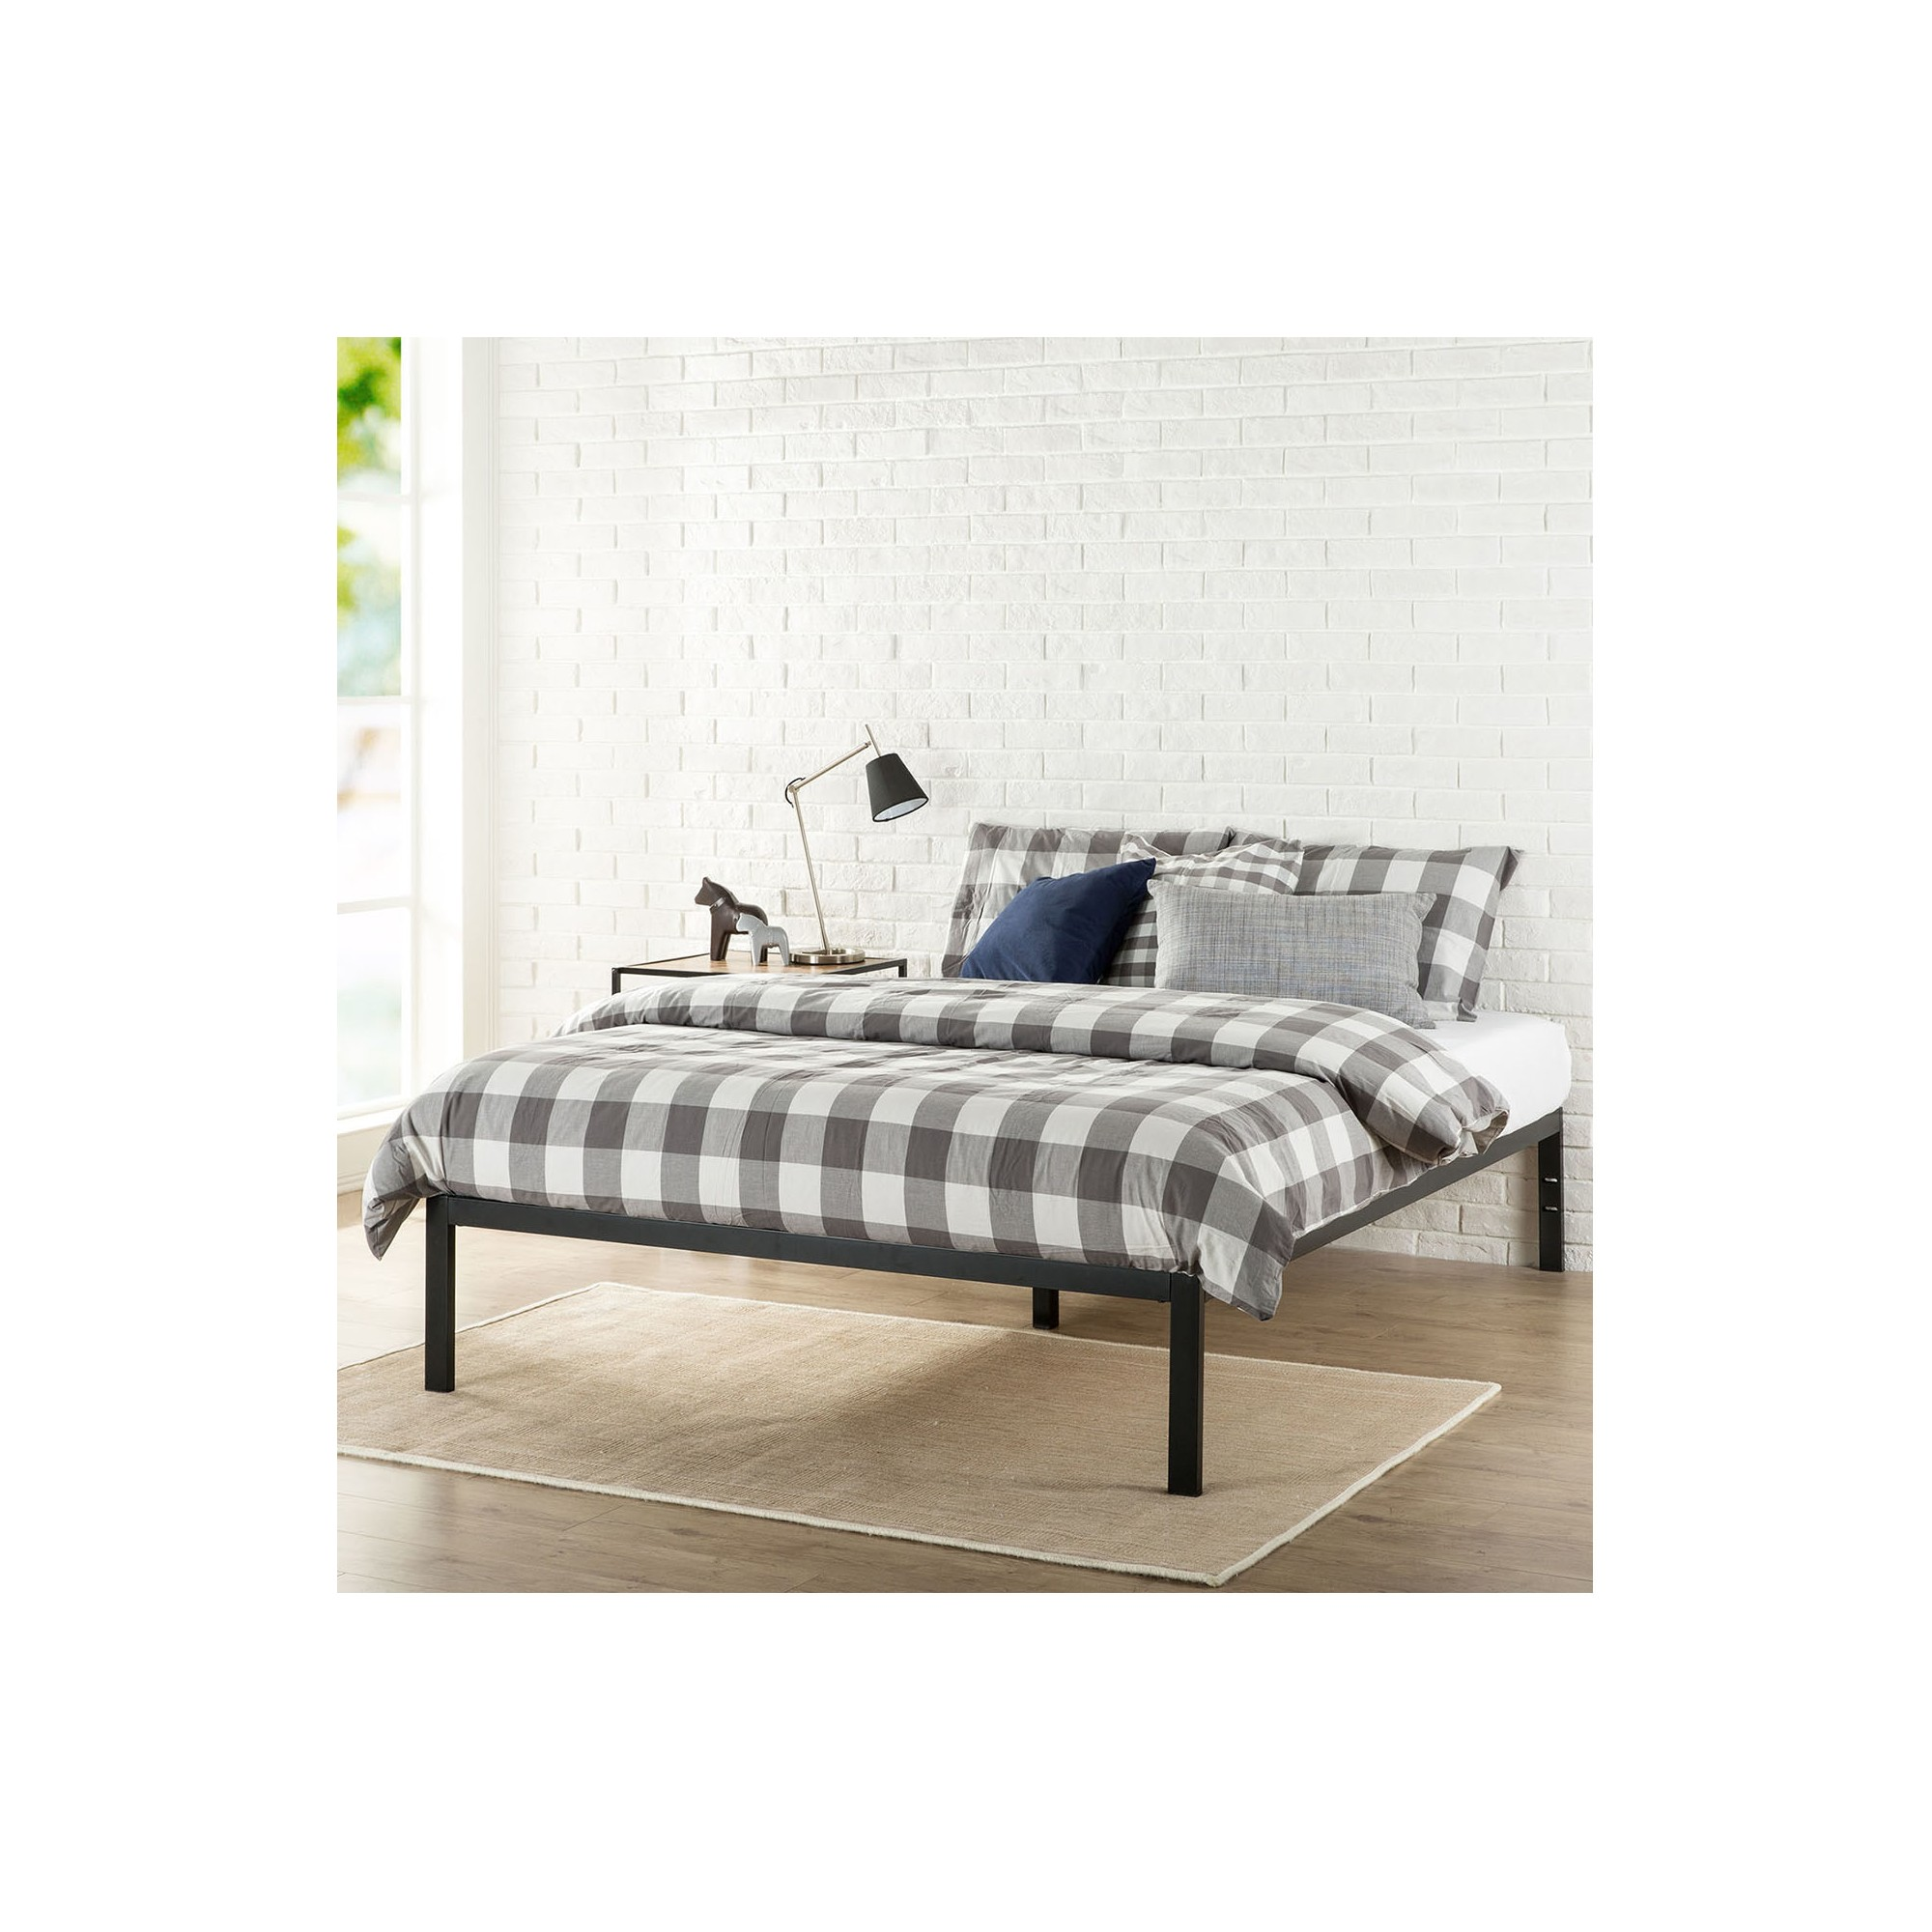 Modern Studio Metal Platform Bed 1500 Queen Black